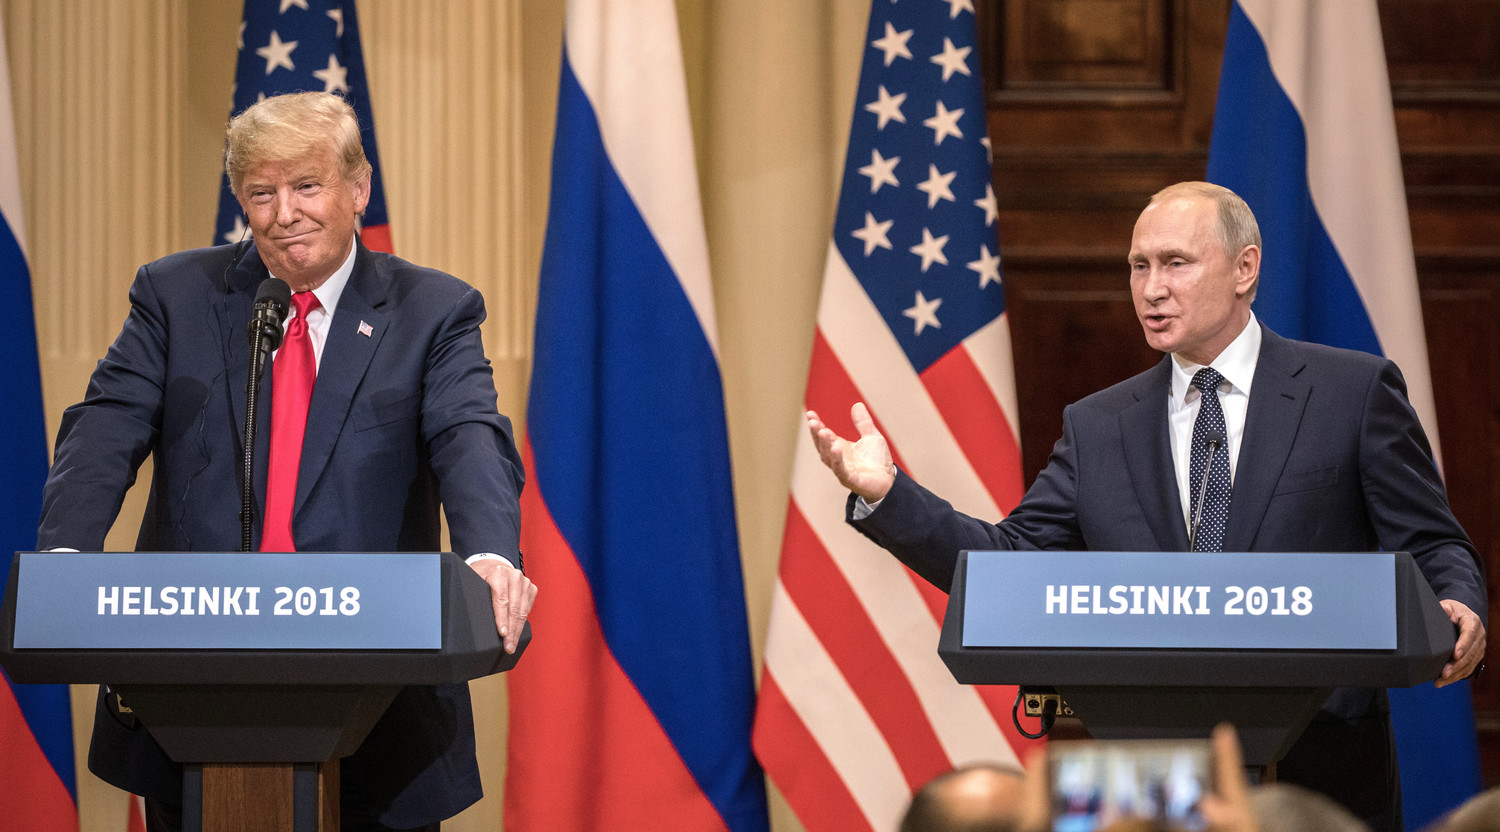 President Donald Trump and President Vladimir Putin of the Russian Federation on Monday.